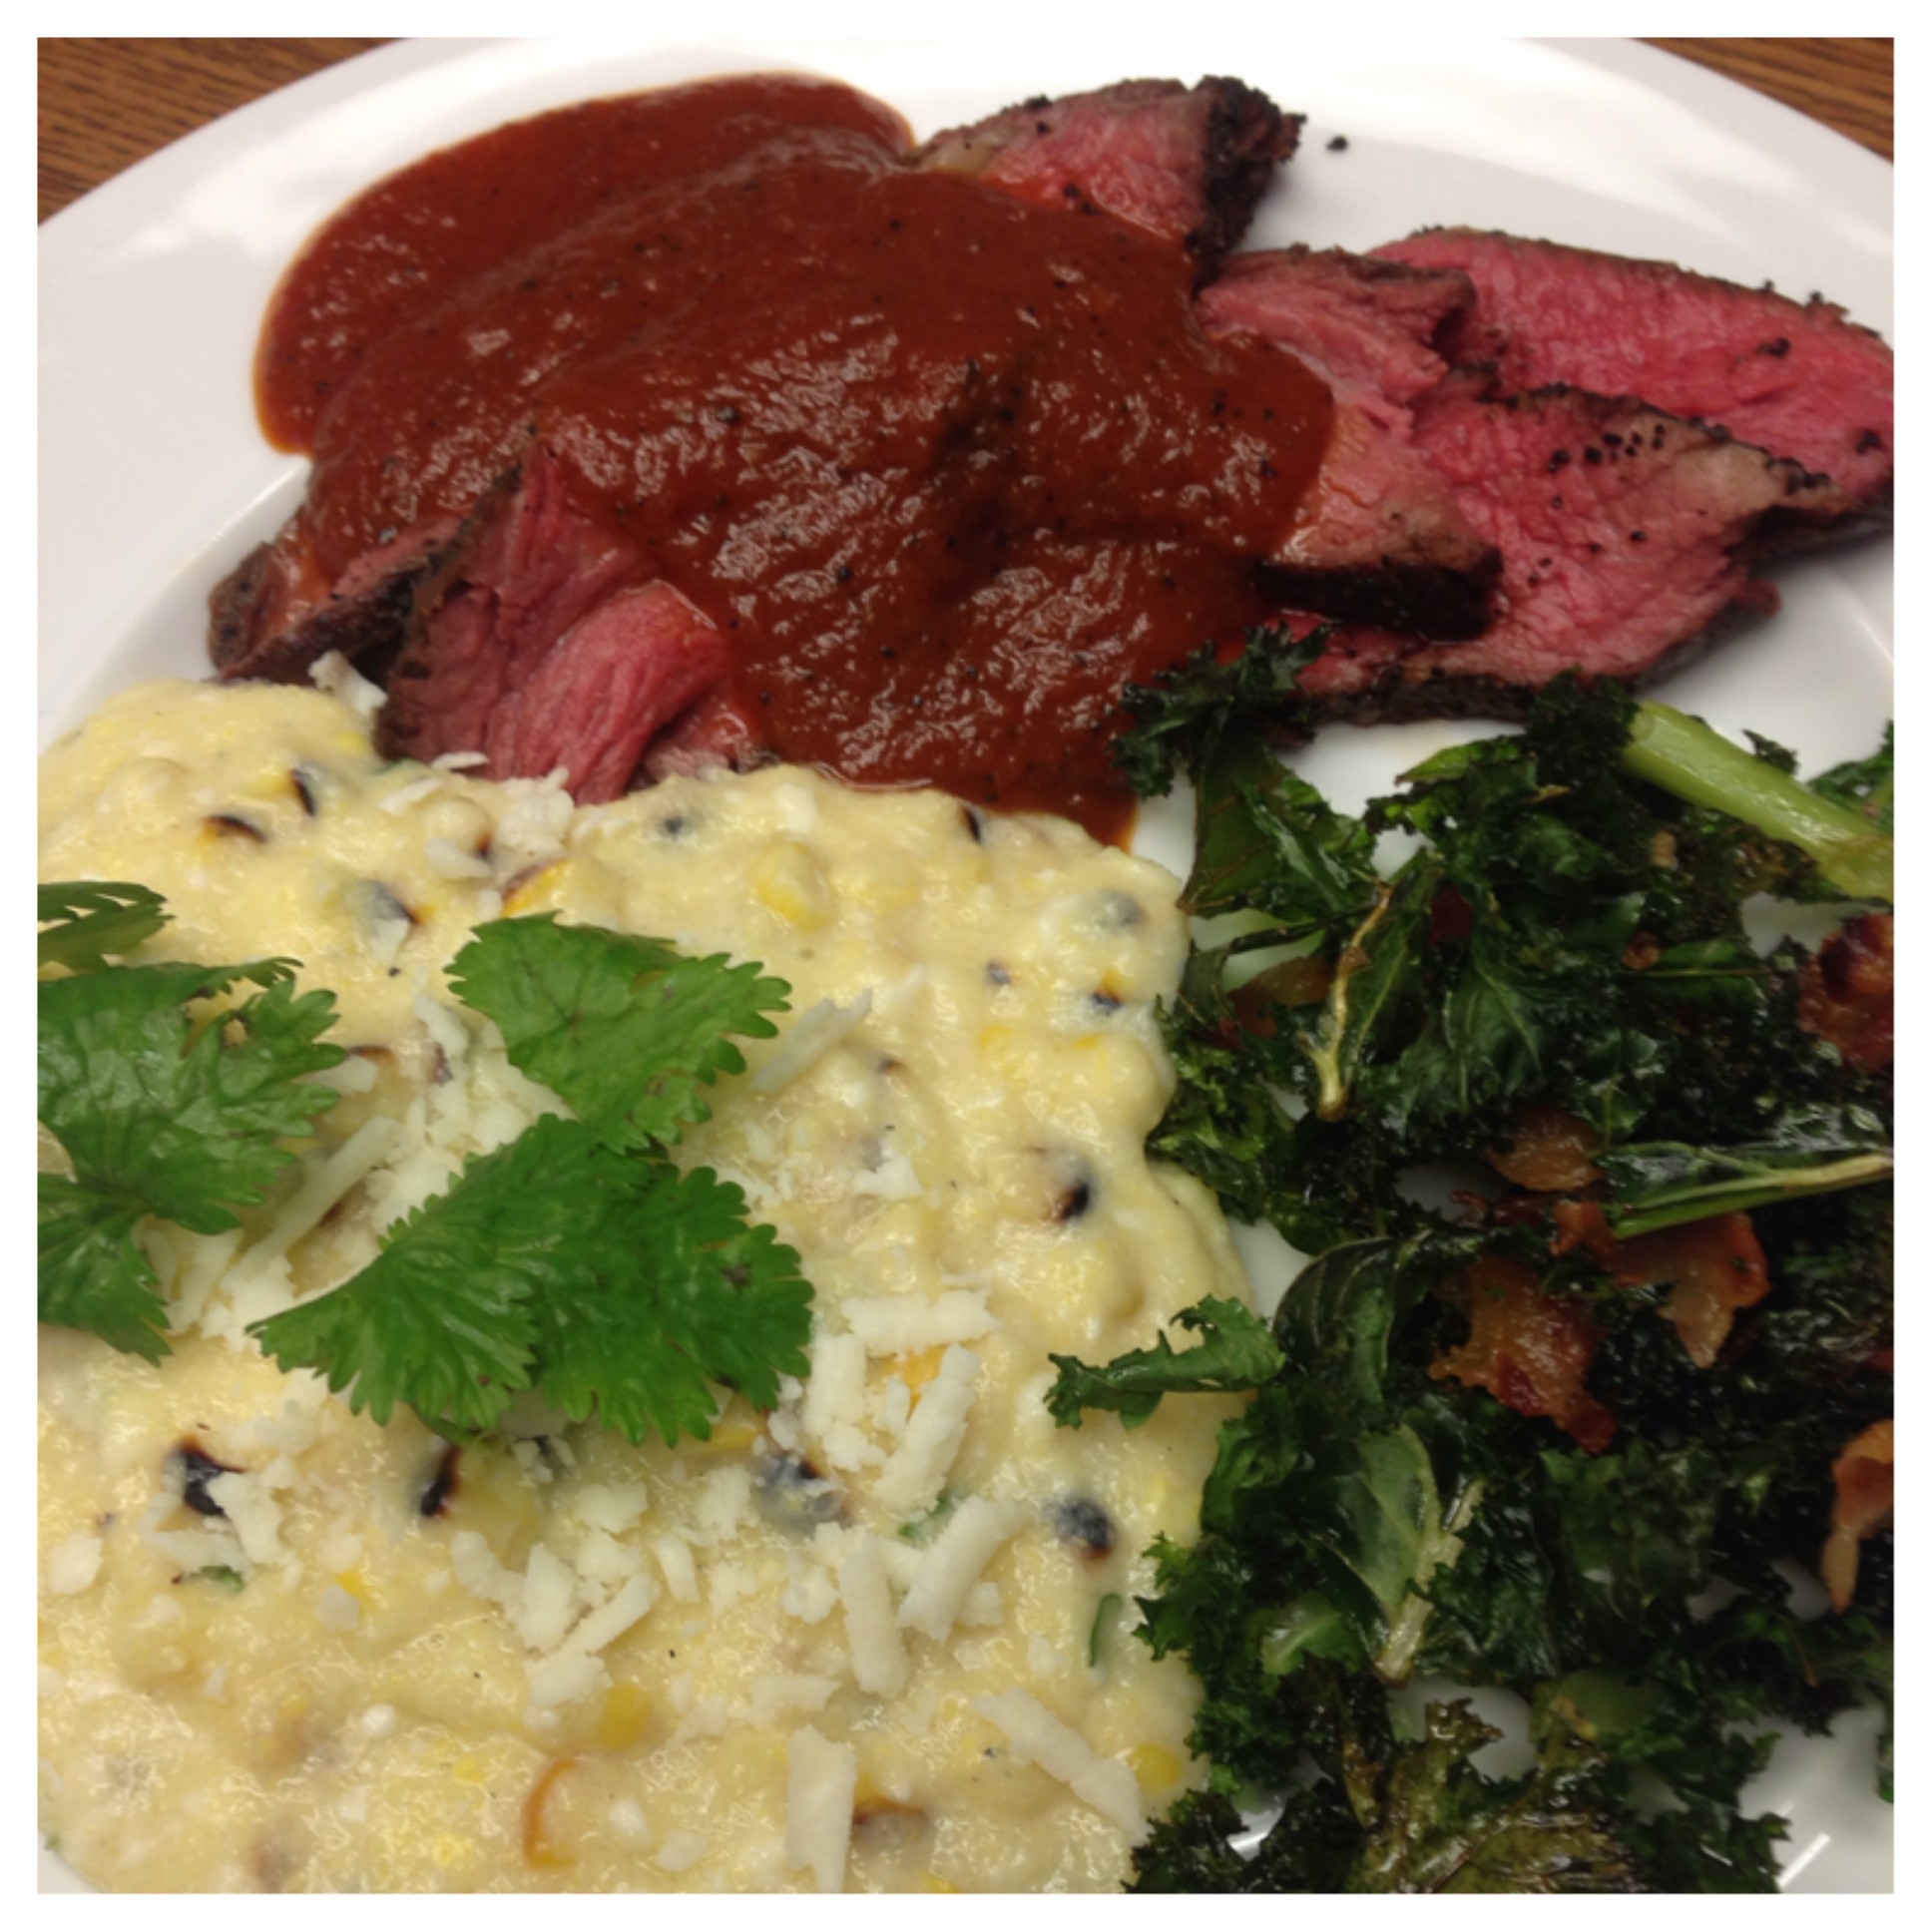 I SERVED THE STEAK WITH A SIDE OF MEXICAN CORN POLENTA AND KALE CHIPS WITH BACON. I TOOK INFLUENCE FROM AMERICAN BARBECUE, MEXICAN AND ITALIAN CUISINES. THE POLENTA HAS COCONUT MILK FOR SWEETNESS, ROASTED CORN, CILANTRO, LIME JUICE AND COTIJA CHEESE,ALL THE FLAVORS OFTHE POPULAR MEXICAN STREET FOOD. THE KALE IS A PLAY ON SOUTHERN GREENS THAT ARE USUALLY MADE WITH COLLARDS. I WANTED A CRUNCHY TEXTURE IN THE DISH SO I MADE THEM INTO CHIPS AND ADDED BACON INSTEAD OF THE SMOKED HAM HOCK WHICH IS TYPICALLY FOUND IN GREENS.